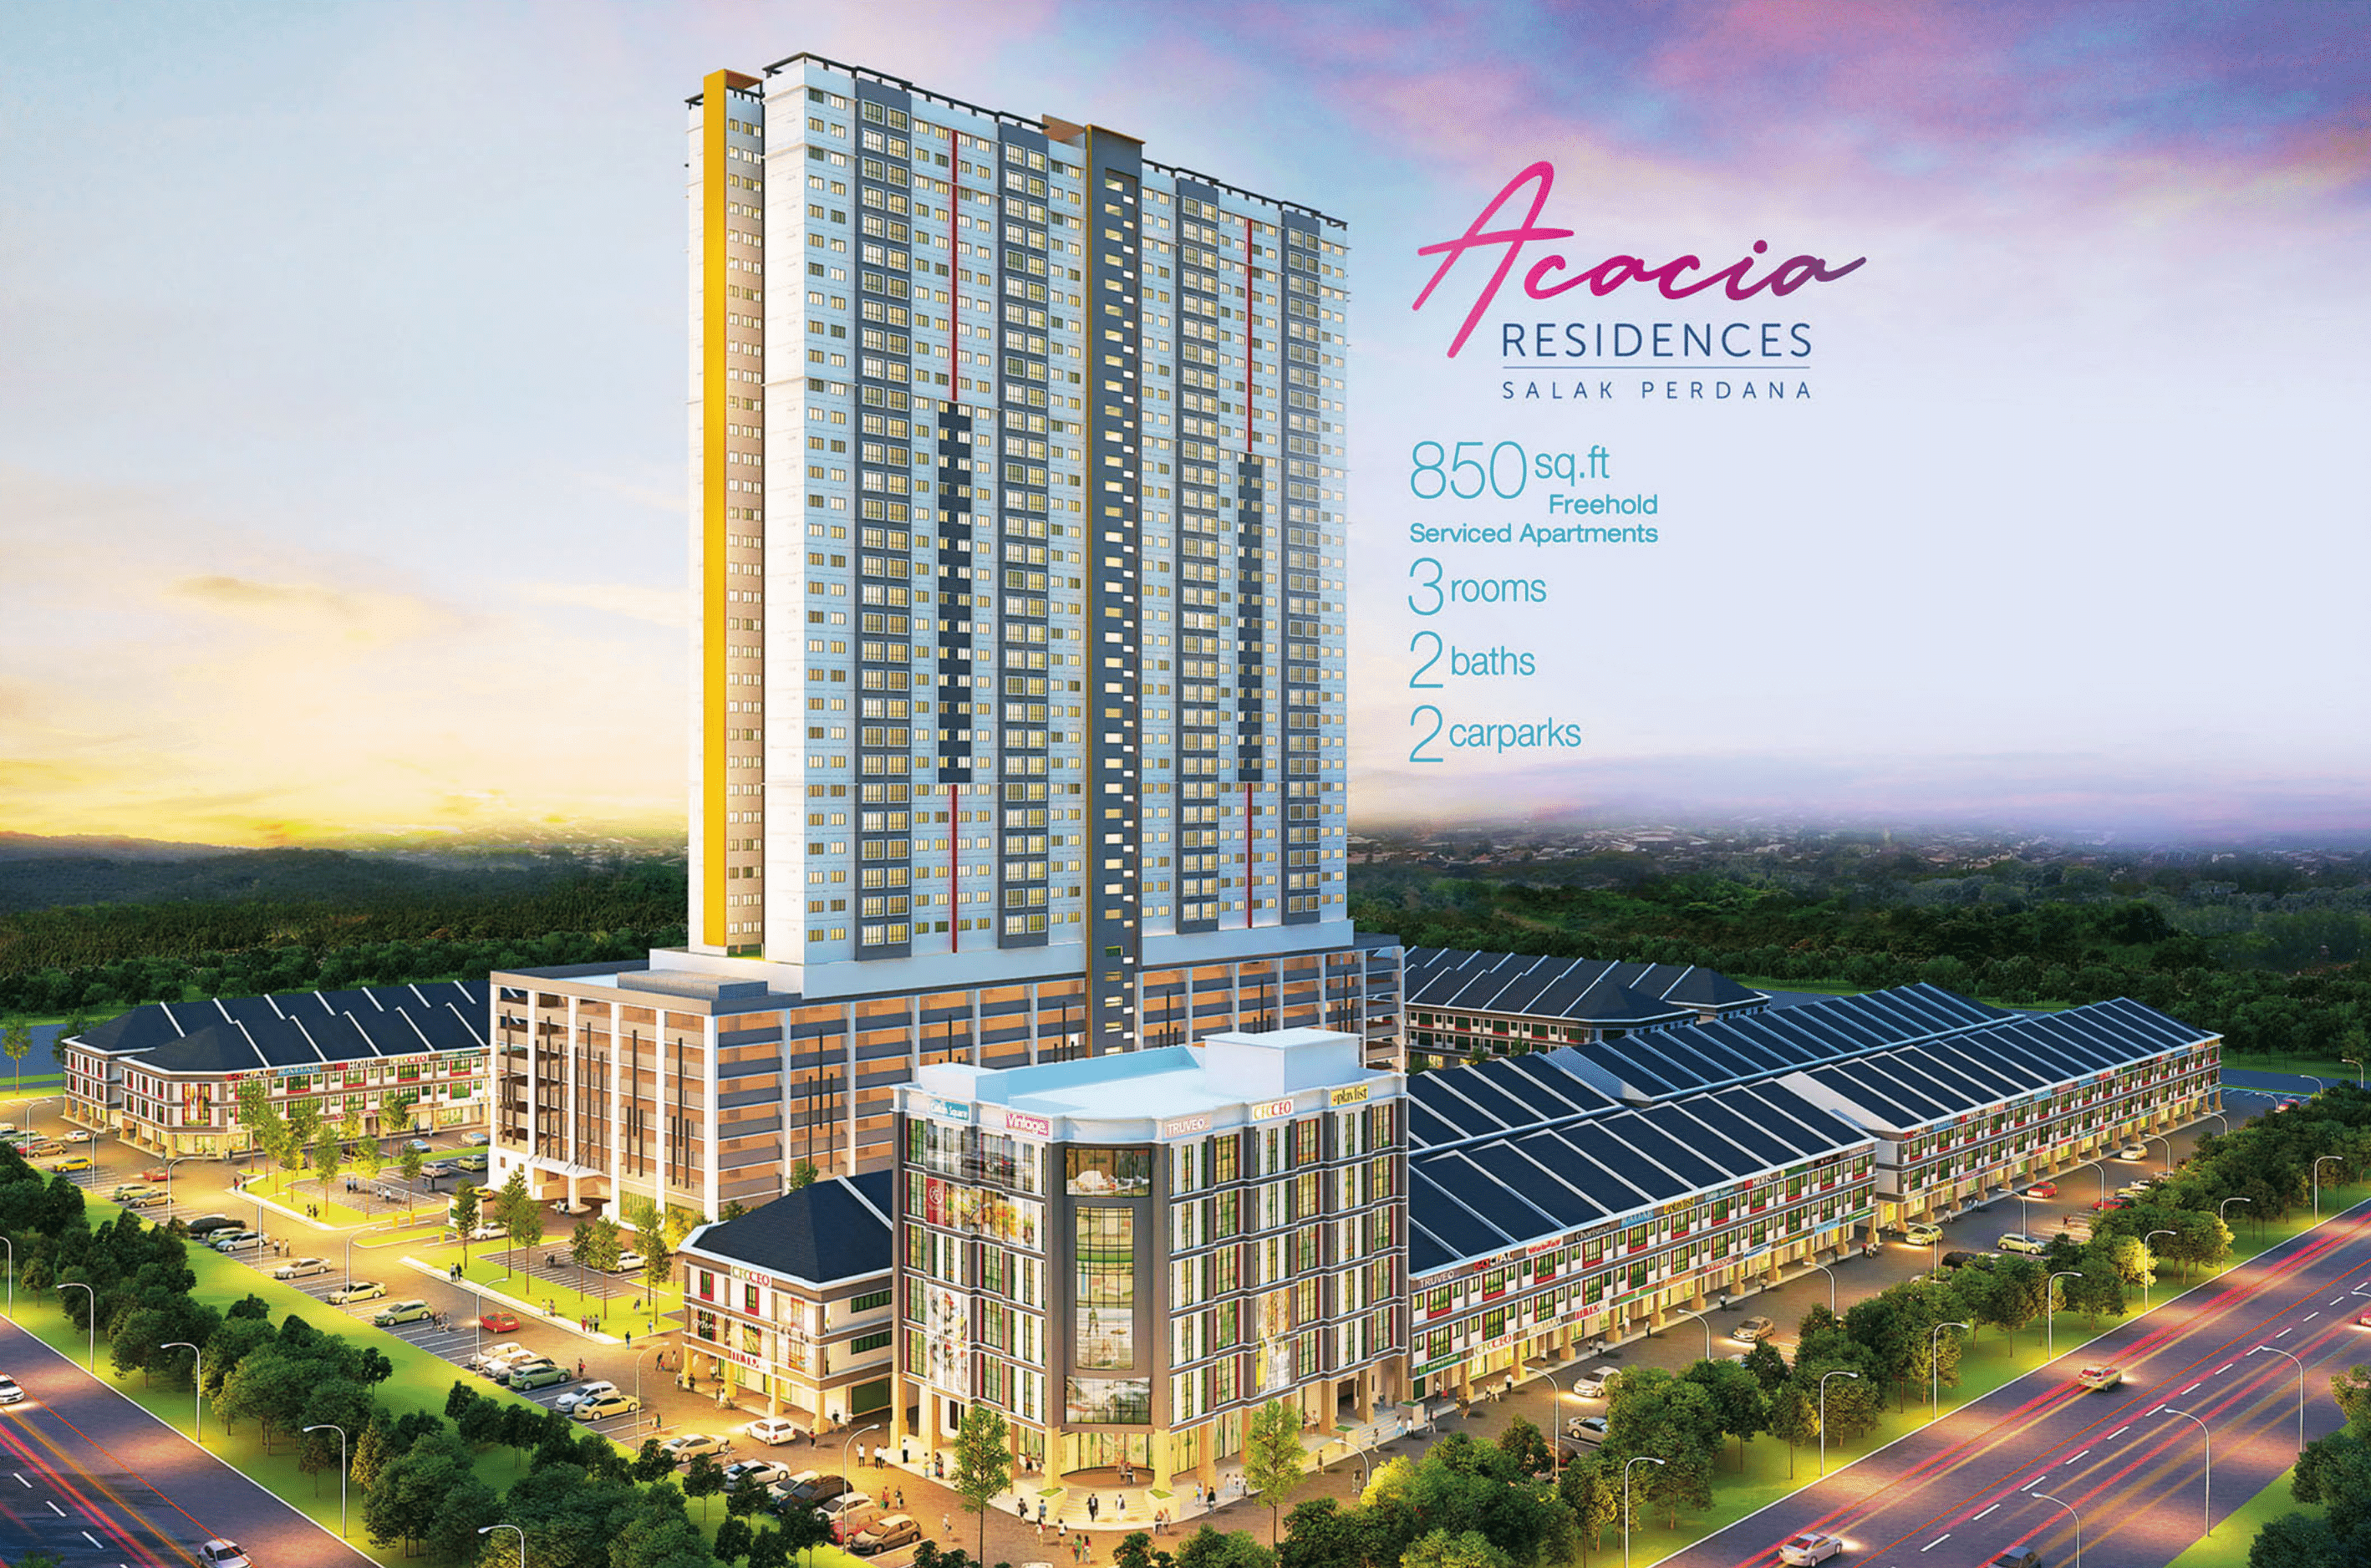 Acacia Residences (SOLD OUT) 21